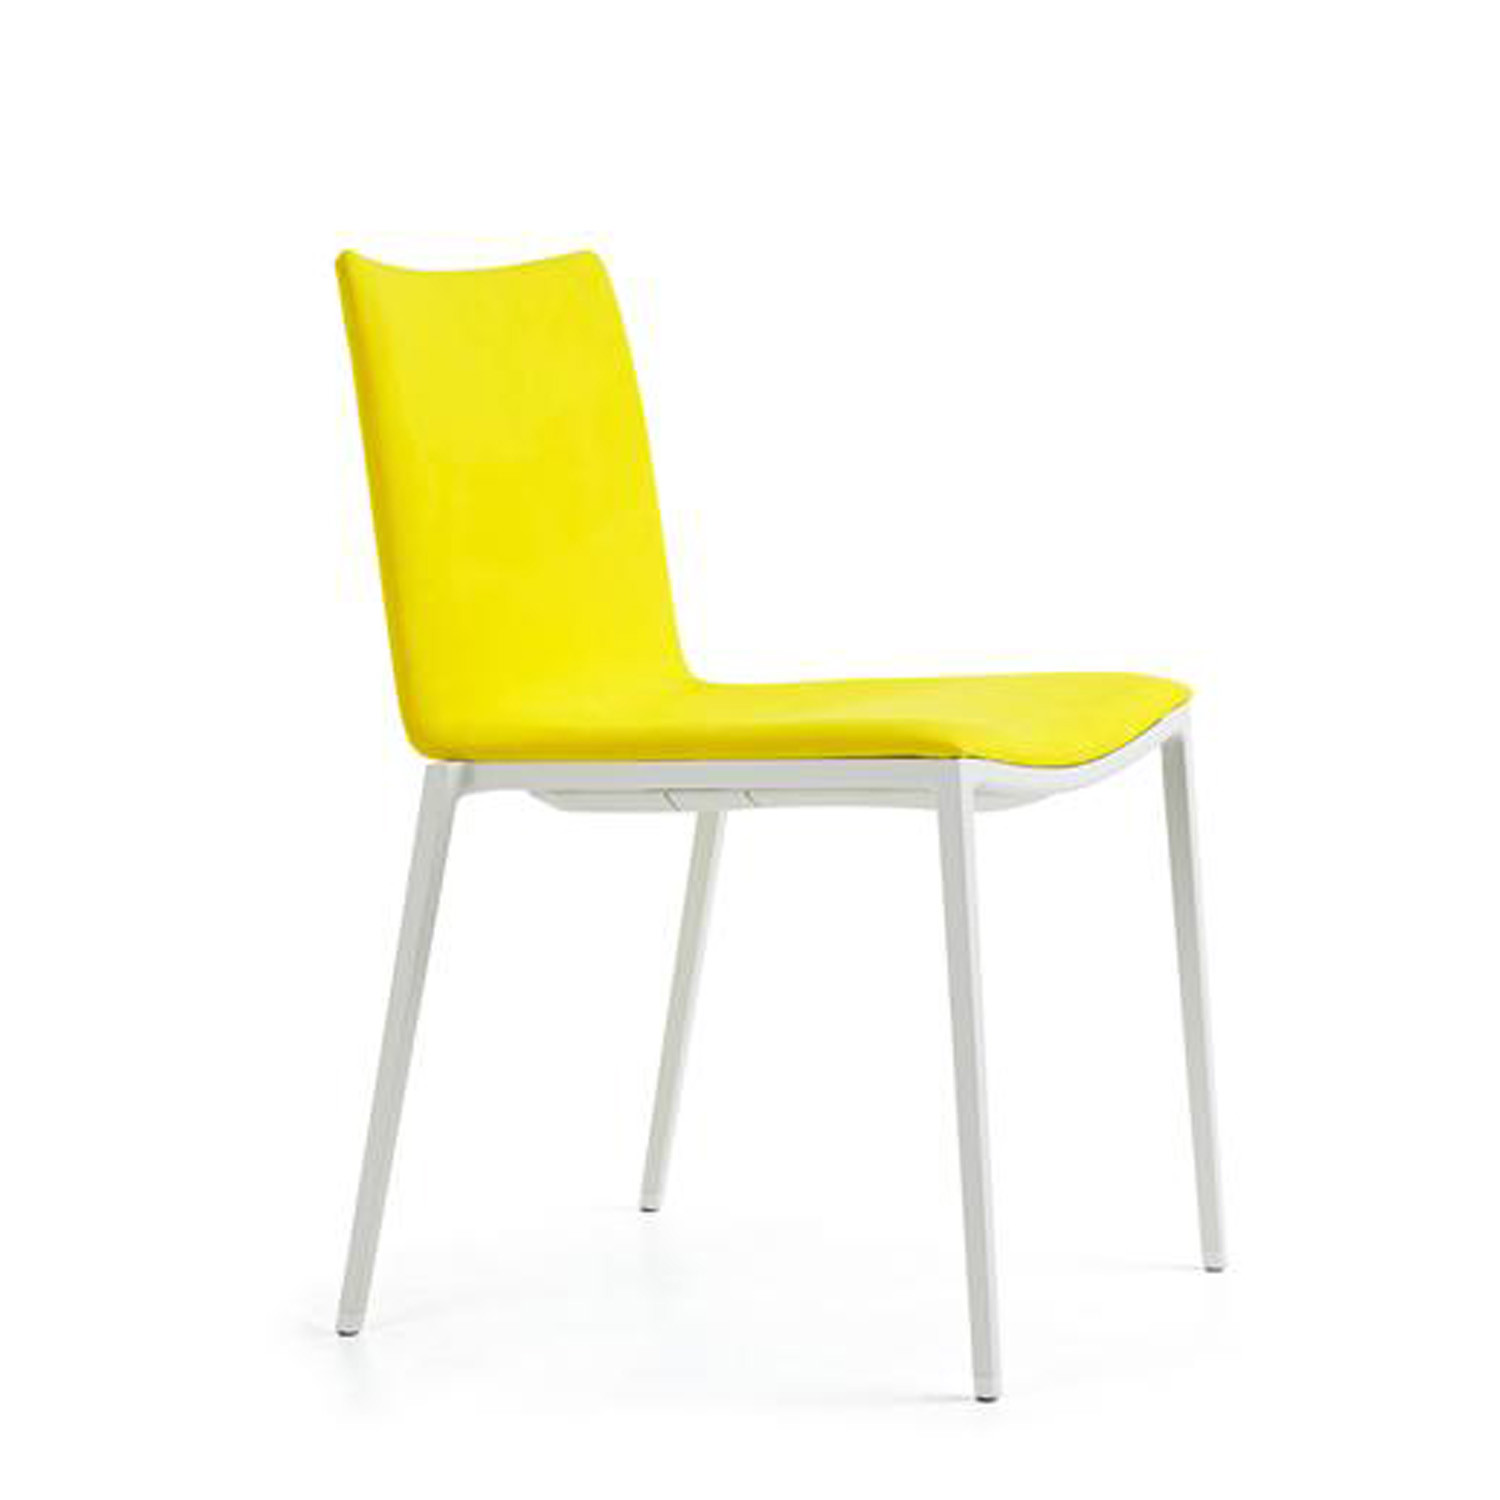 Archal Chair by Lammhults